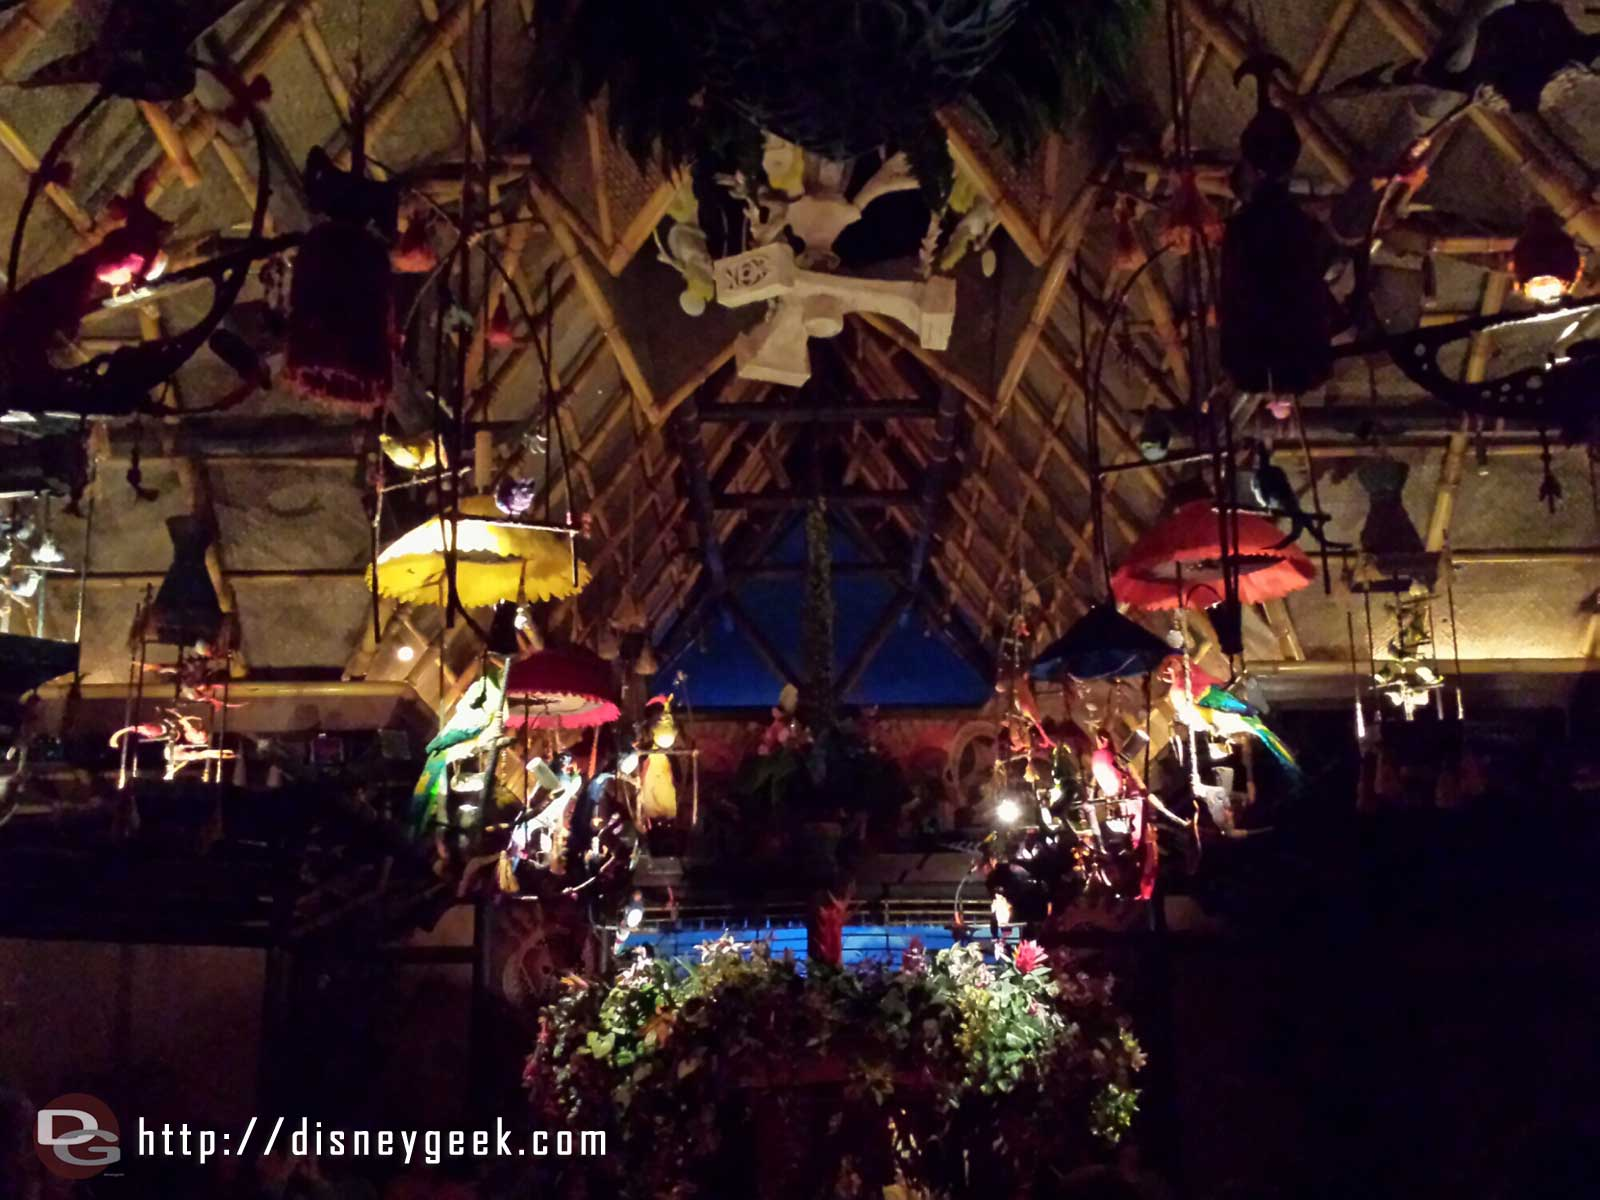 Stopped by the Enchanted Tiki Room